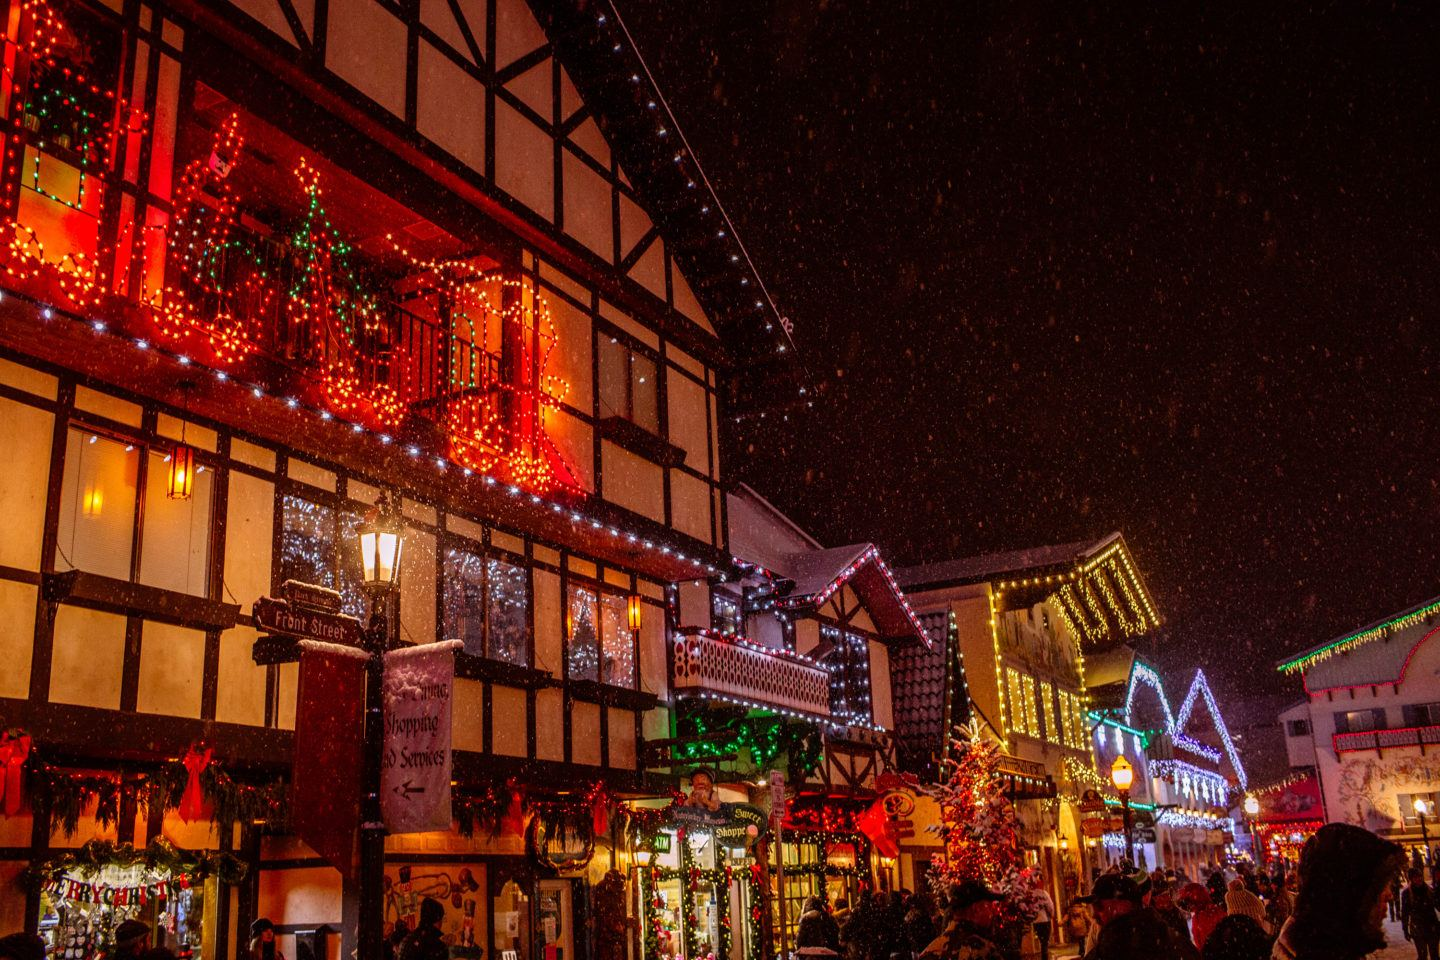 Things to Do in Leavenworth: Your Ultimate City Guide